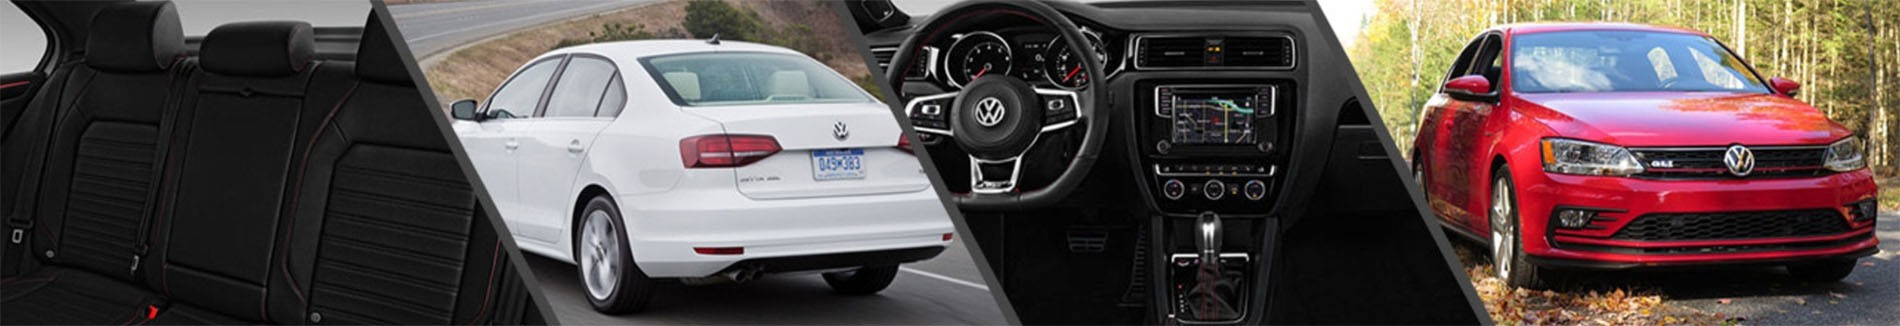 New 2017 Volkswagen Jetta for sale in North Palm Beach FL